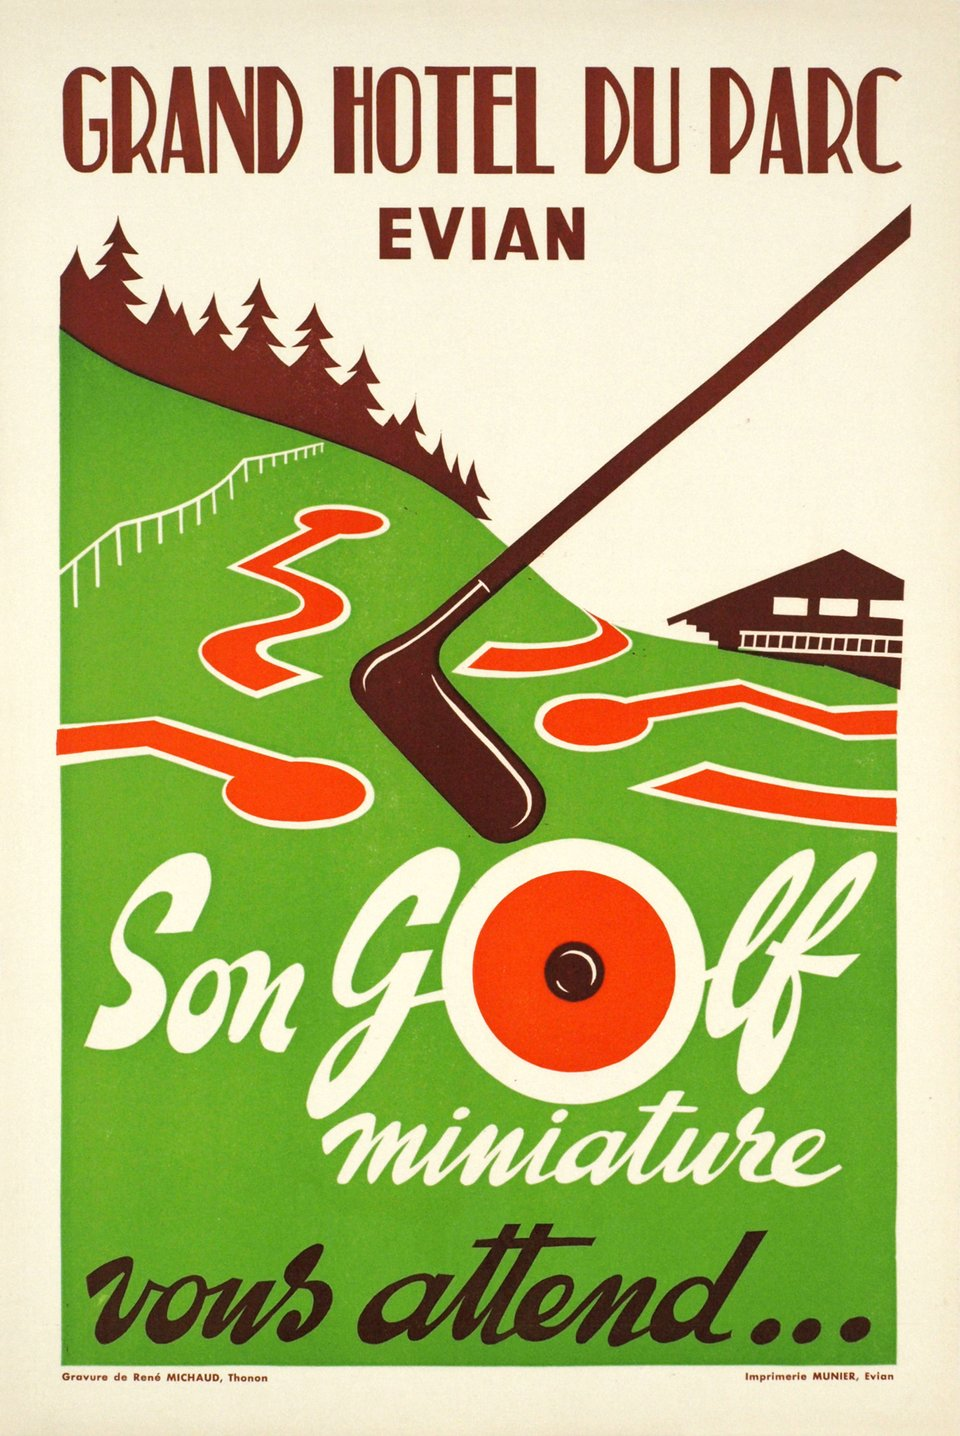 Evian, Grand Hôtel du Parc Evian, son golf miniature vous attend – Affiche ancienne – René MICHAUD – 1952